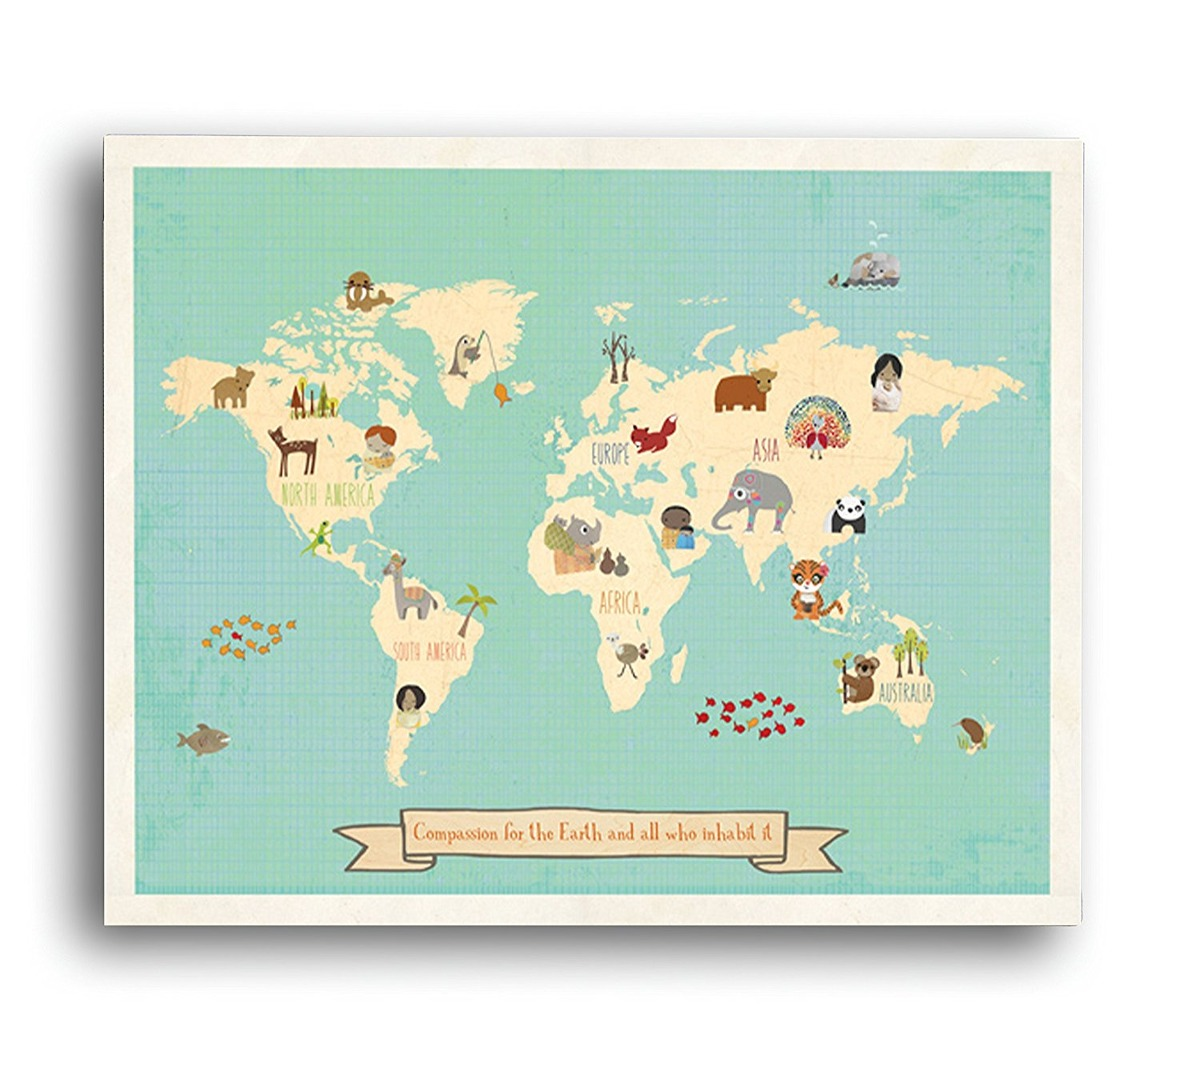 Global compassion world map 24x18 print childrens wall art global compassion world map 24x18 print childrens wall art cargando zoom gumiabroncs Image collections